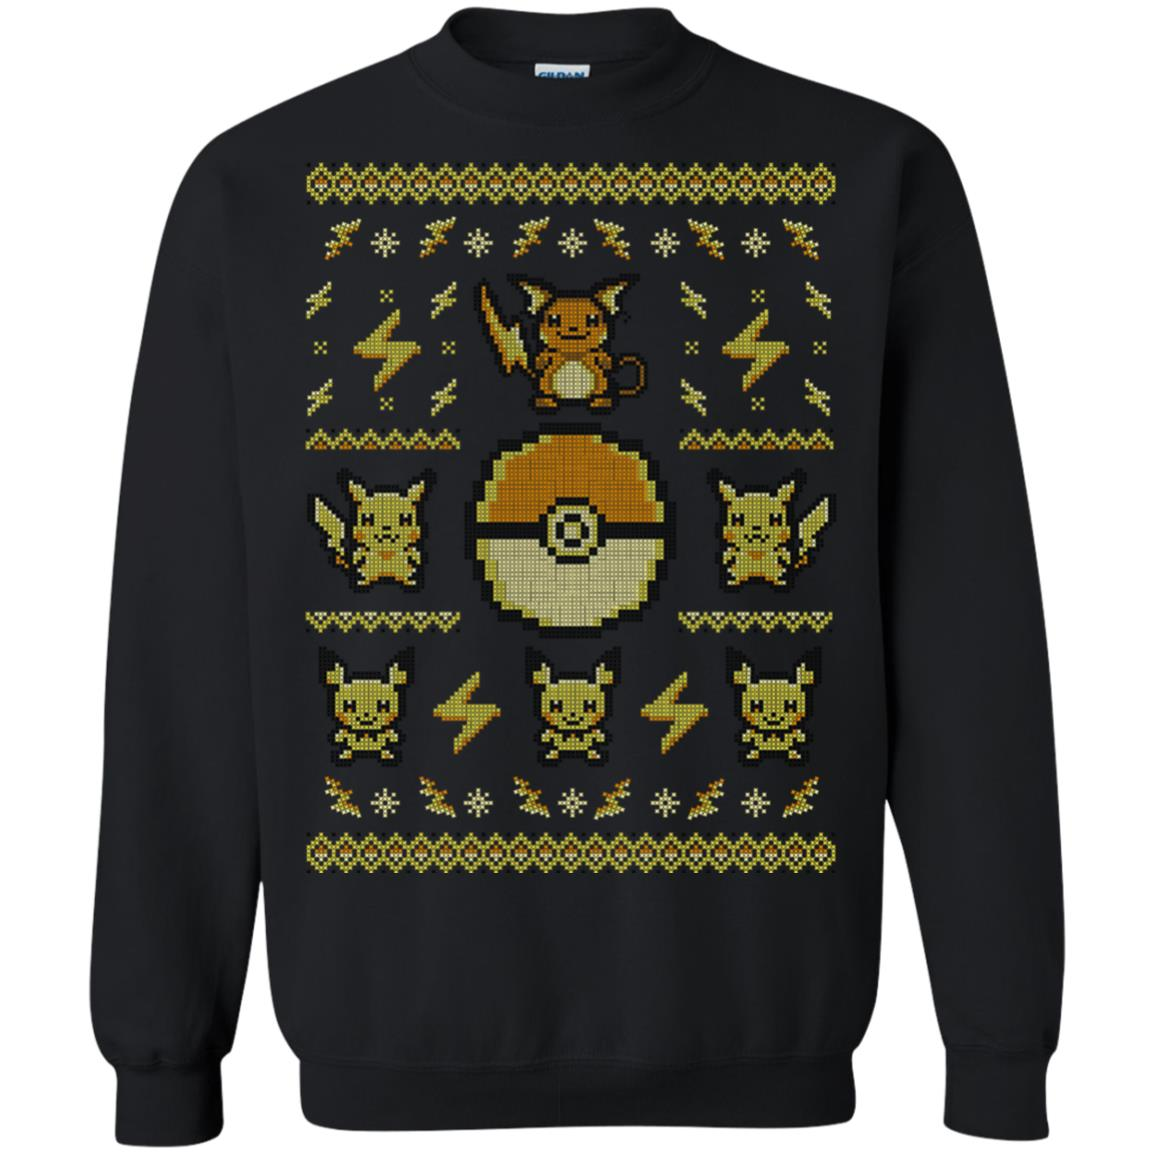 Pokemon Pikachu Ugly Christmas Sweater - Shop Ugly X-mas Sweater